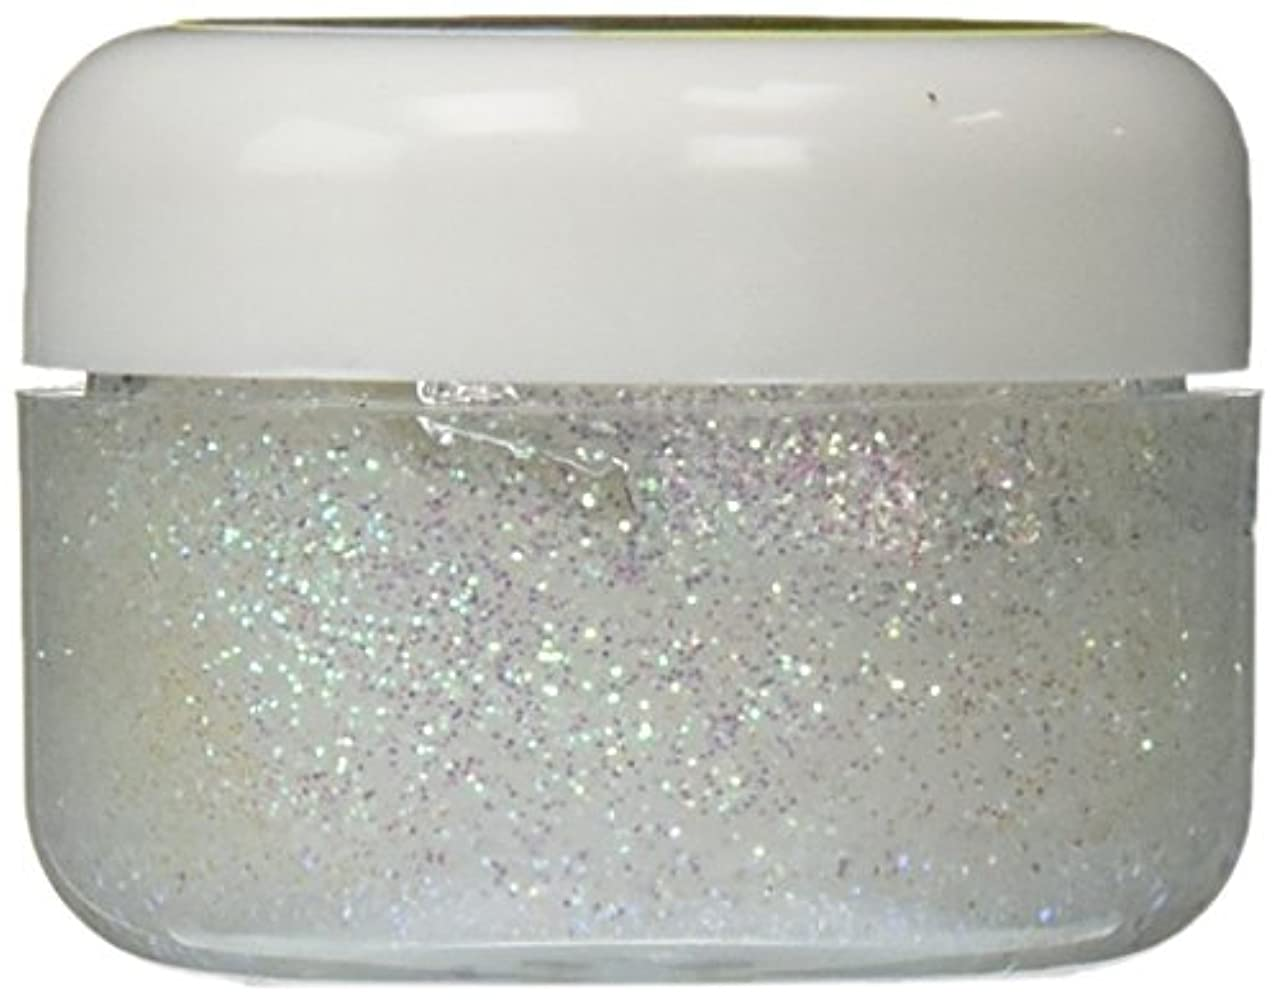 Colart Americas Snazaroo Face & Body Glitter Gel 12ml/Pkg-Star Dust, Multicolor